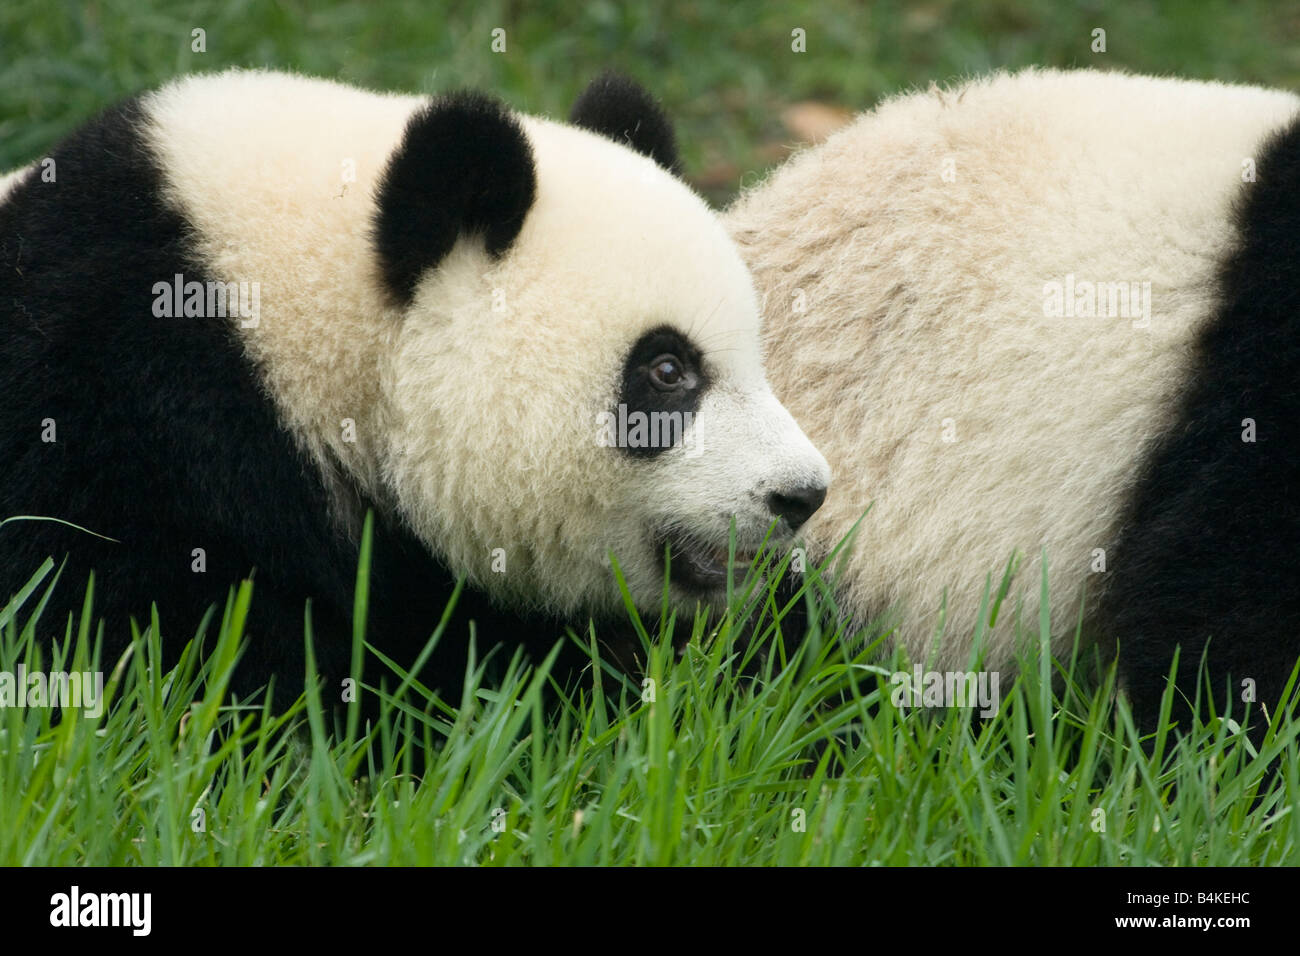 A giant panda cub relaxing in the Chengdu Panda Breeding and Research Center China - Stock Image